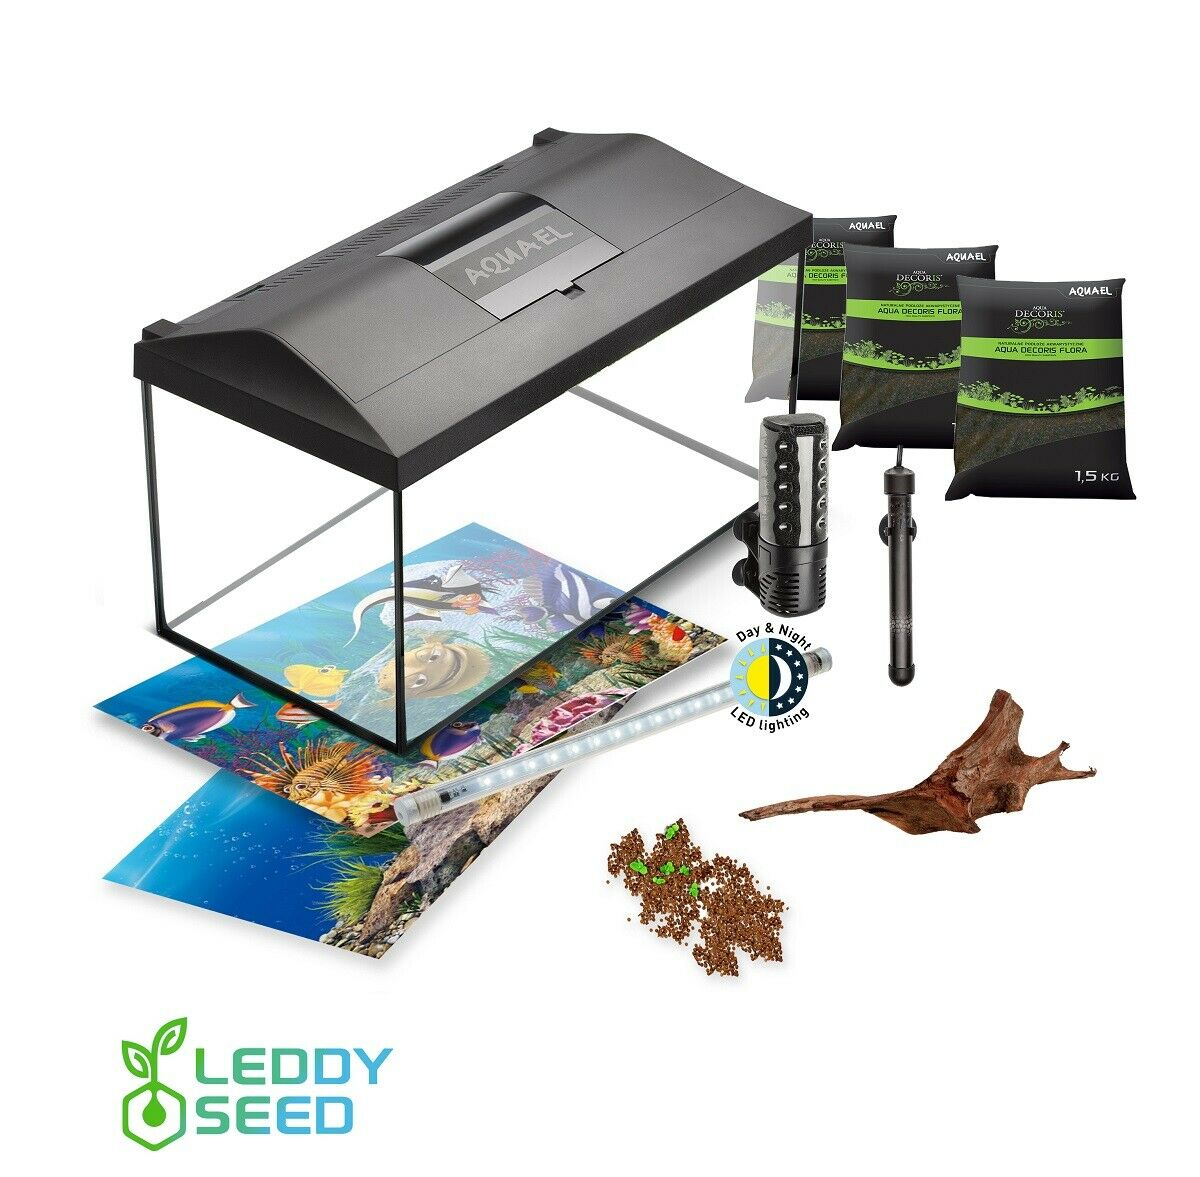 AQUAEL Aquarium Set LEDDY LED DAY&NIGHT SEED komplett inkl. Abdeckung, Filter...